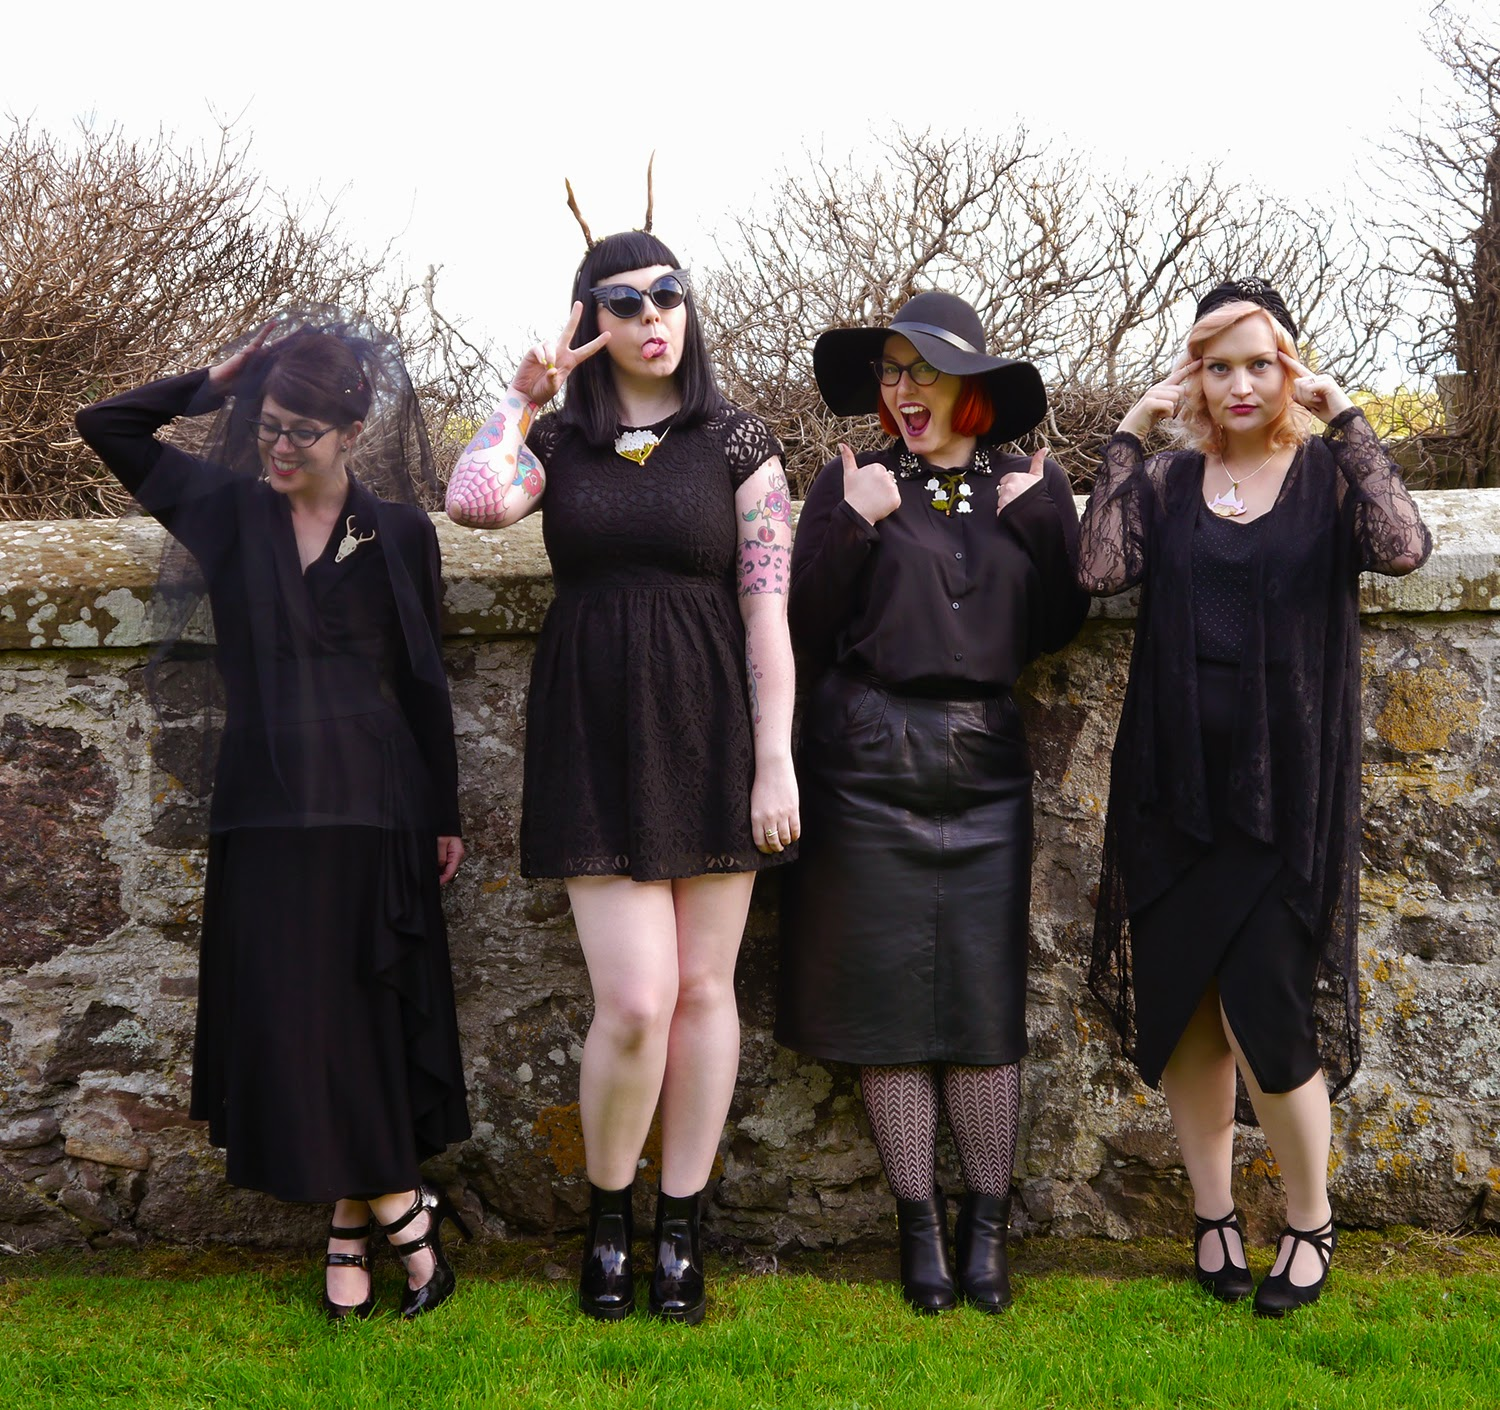 Wardrobe Conversations, blogging duo, scottish bloggers, #scotstreetstyle, halloween, fashion film, lookbook. Coven, behind the scenes, North East Scotland, Runaway Fox